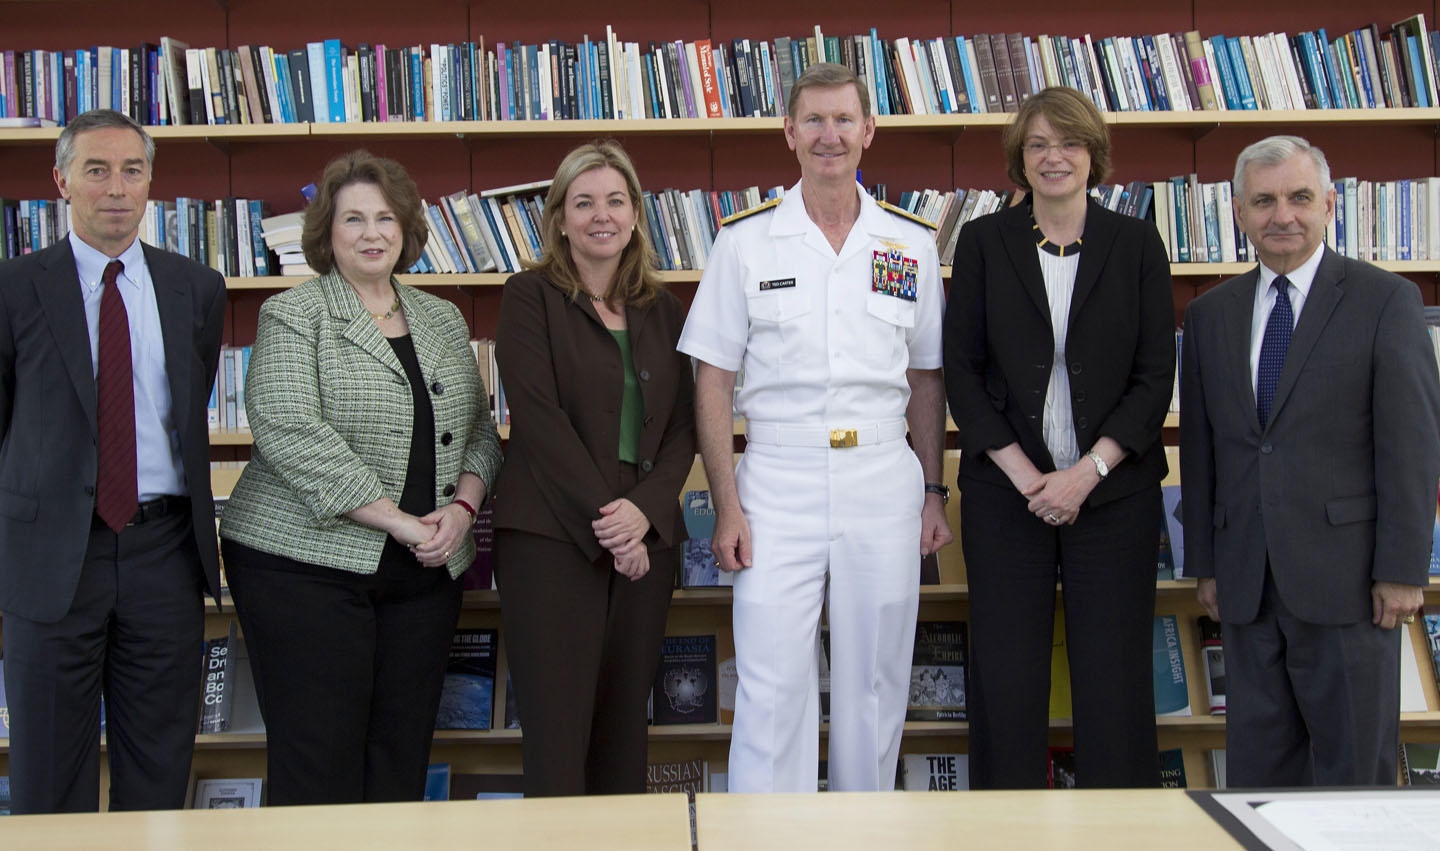 At the signing: From left, Richard Locke, Watson Institute director; Mary Ann Peters, provost of the Naval War College; Vicki Colvin, provost-elect at Brown; Rear Admiral Carter; President Paxson; Sen. Jack Reed.